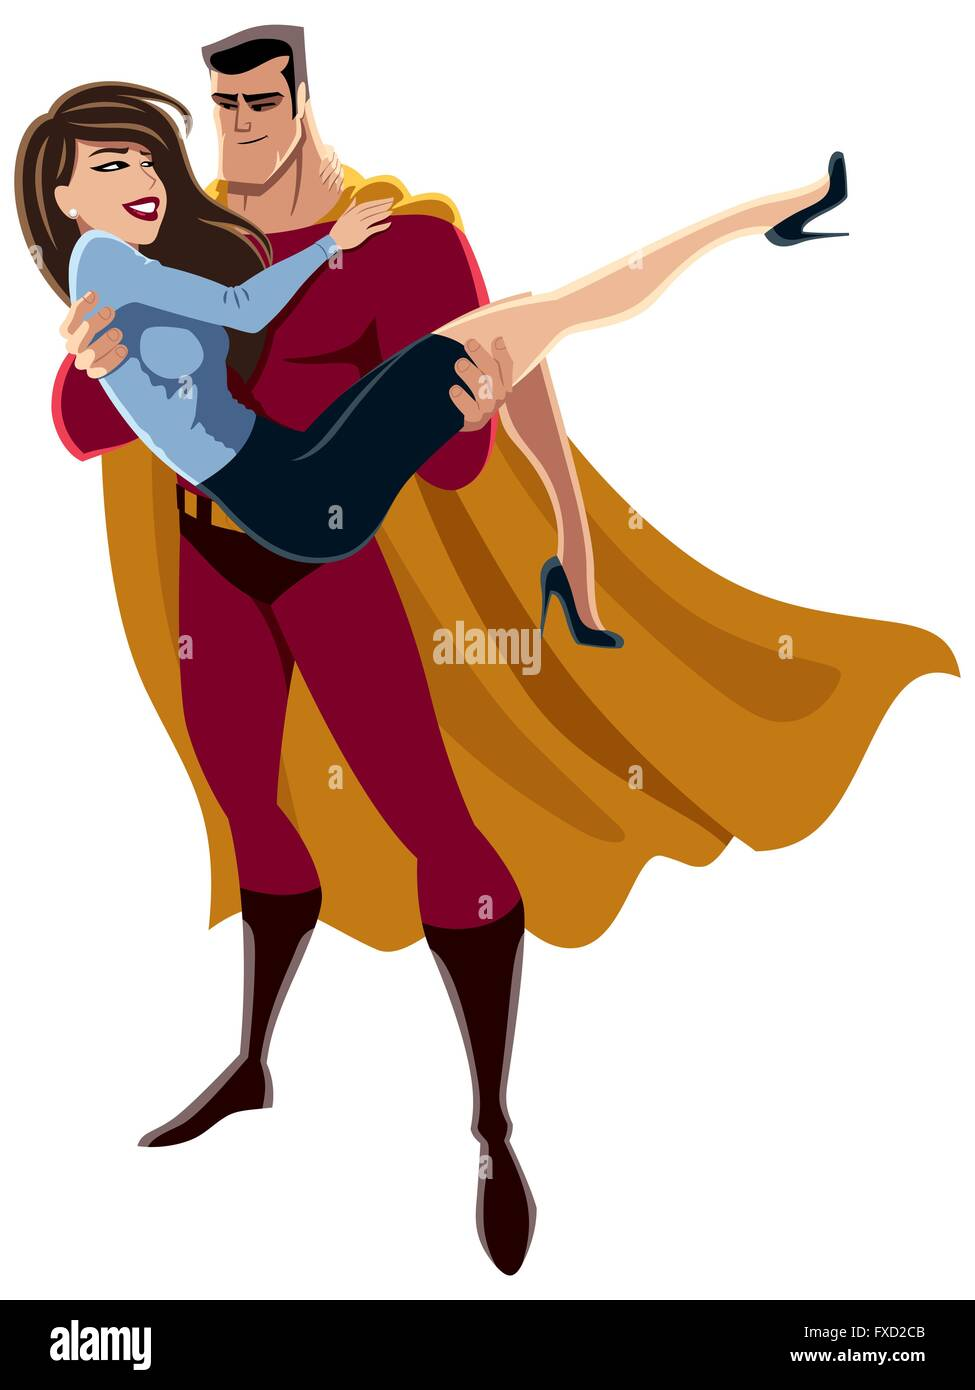 Illustration of superhero carrying woman in his arms. No transparency and gradients used. Stock Vector